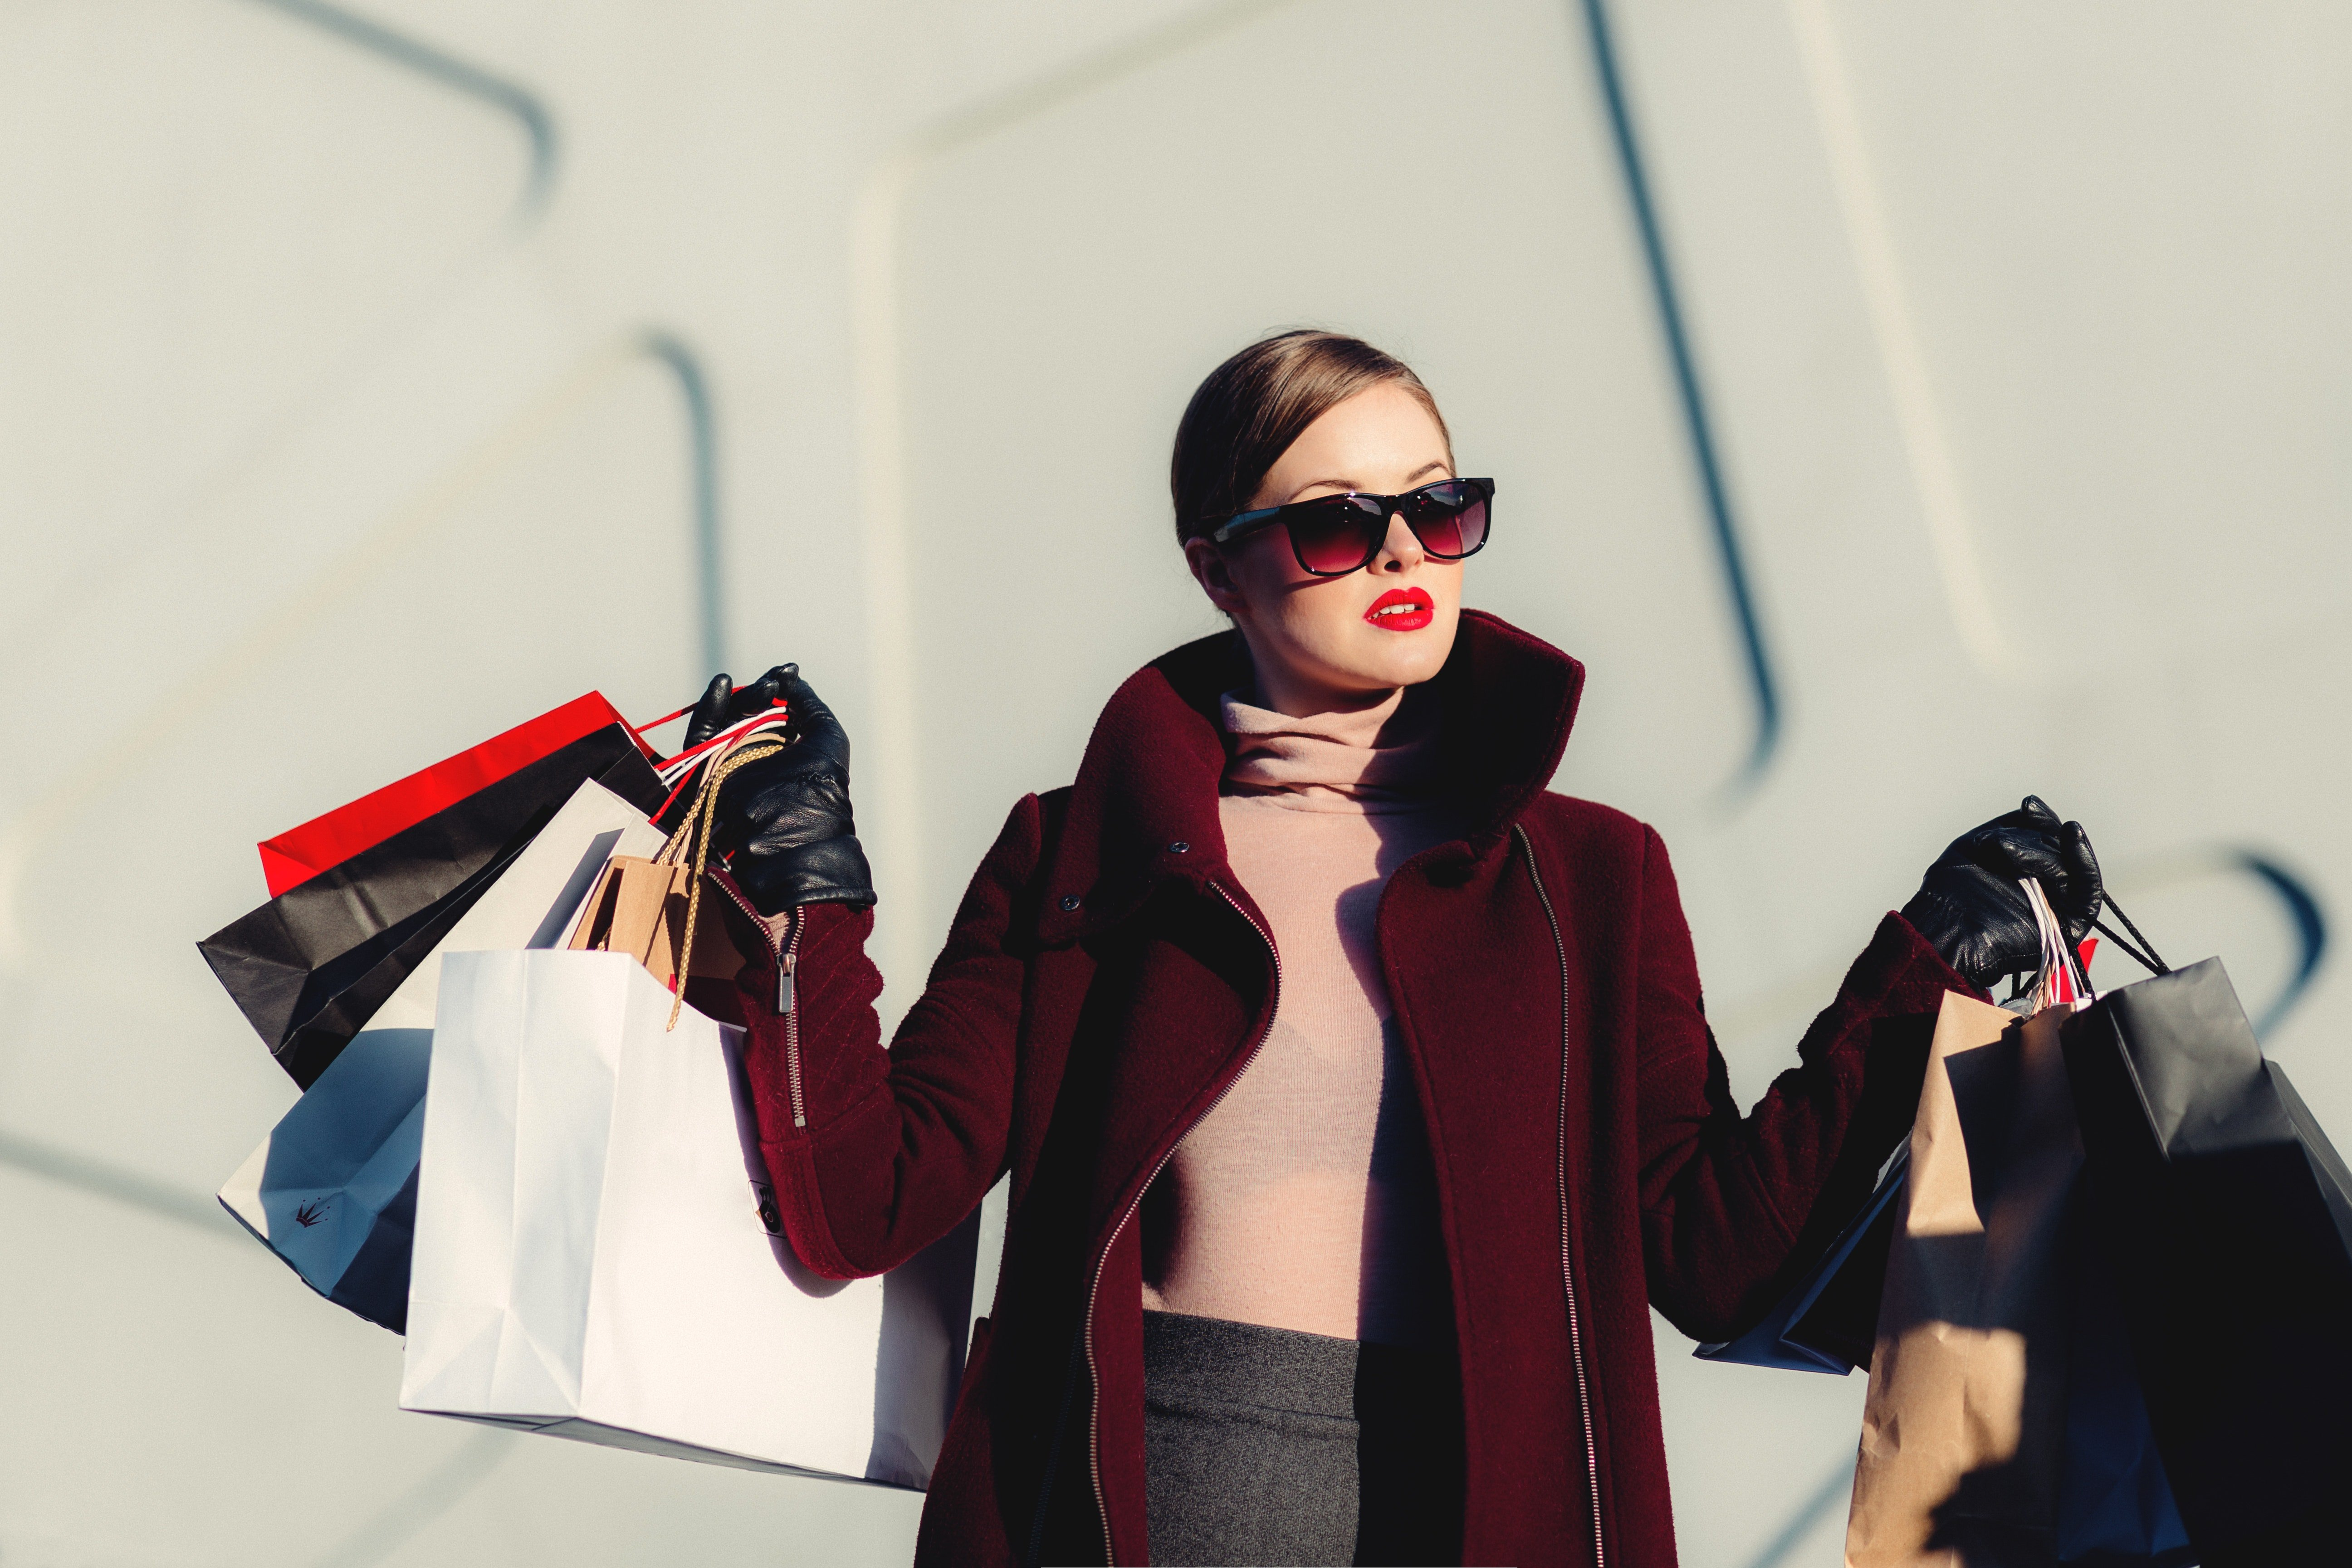 Pictured - A woman holding shopping bags | Source: Pexels